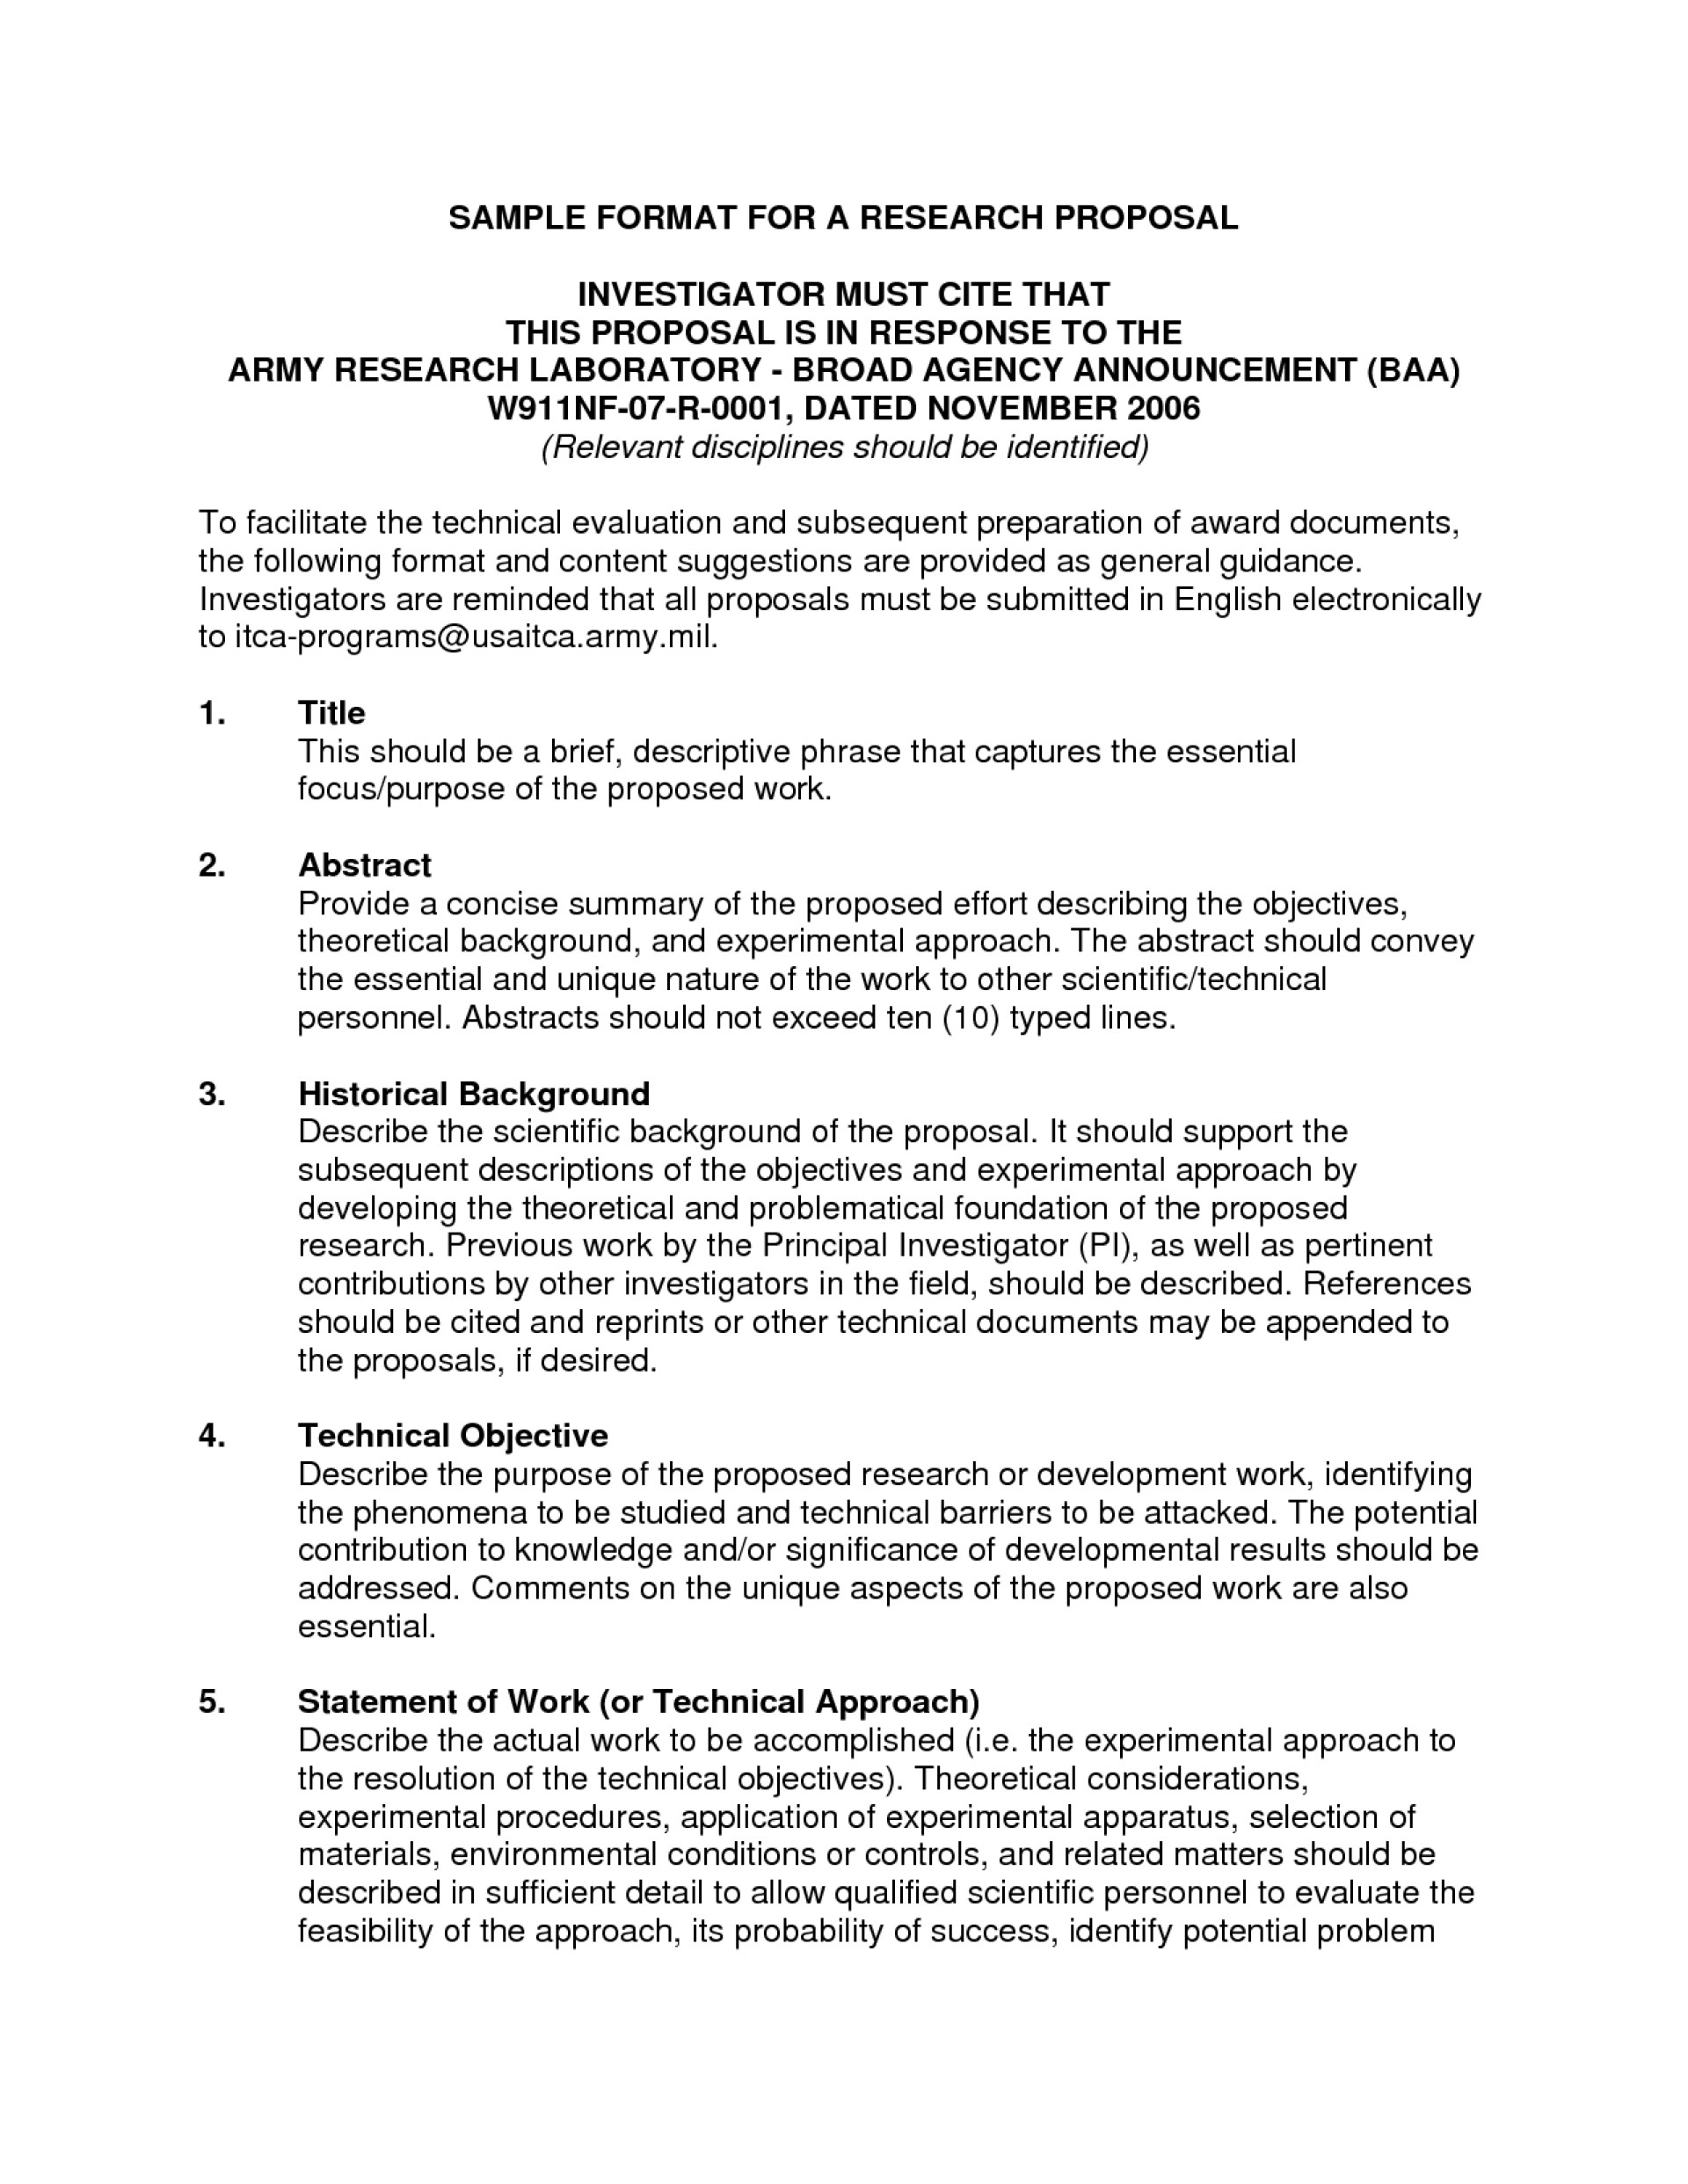 008 Research Proposal Template Qicmwzxw Essay Example Wondrous Internet Privacy Introduction Censorship Topics Chatting In Urdu 1920